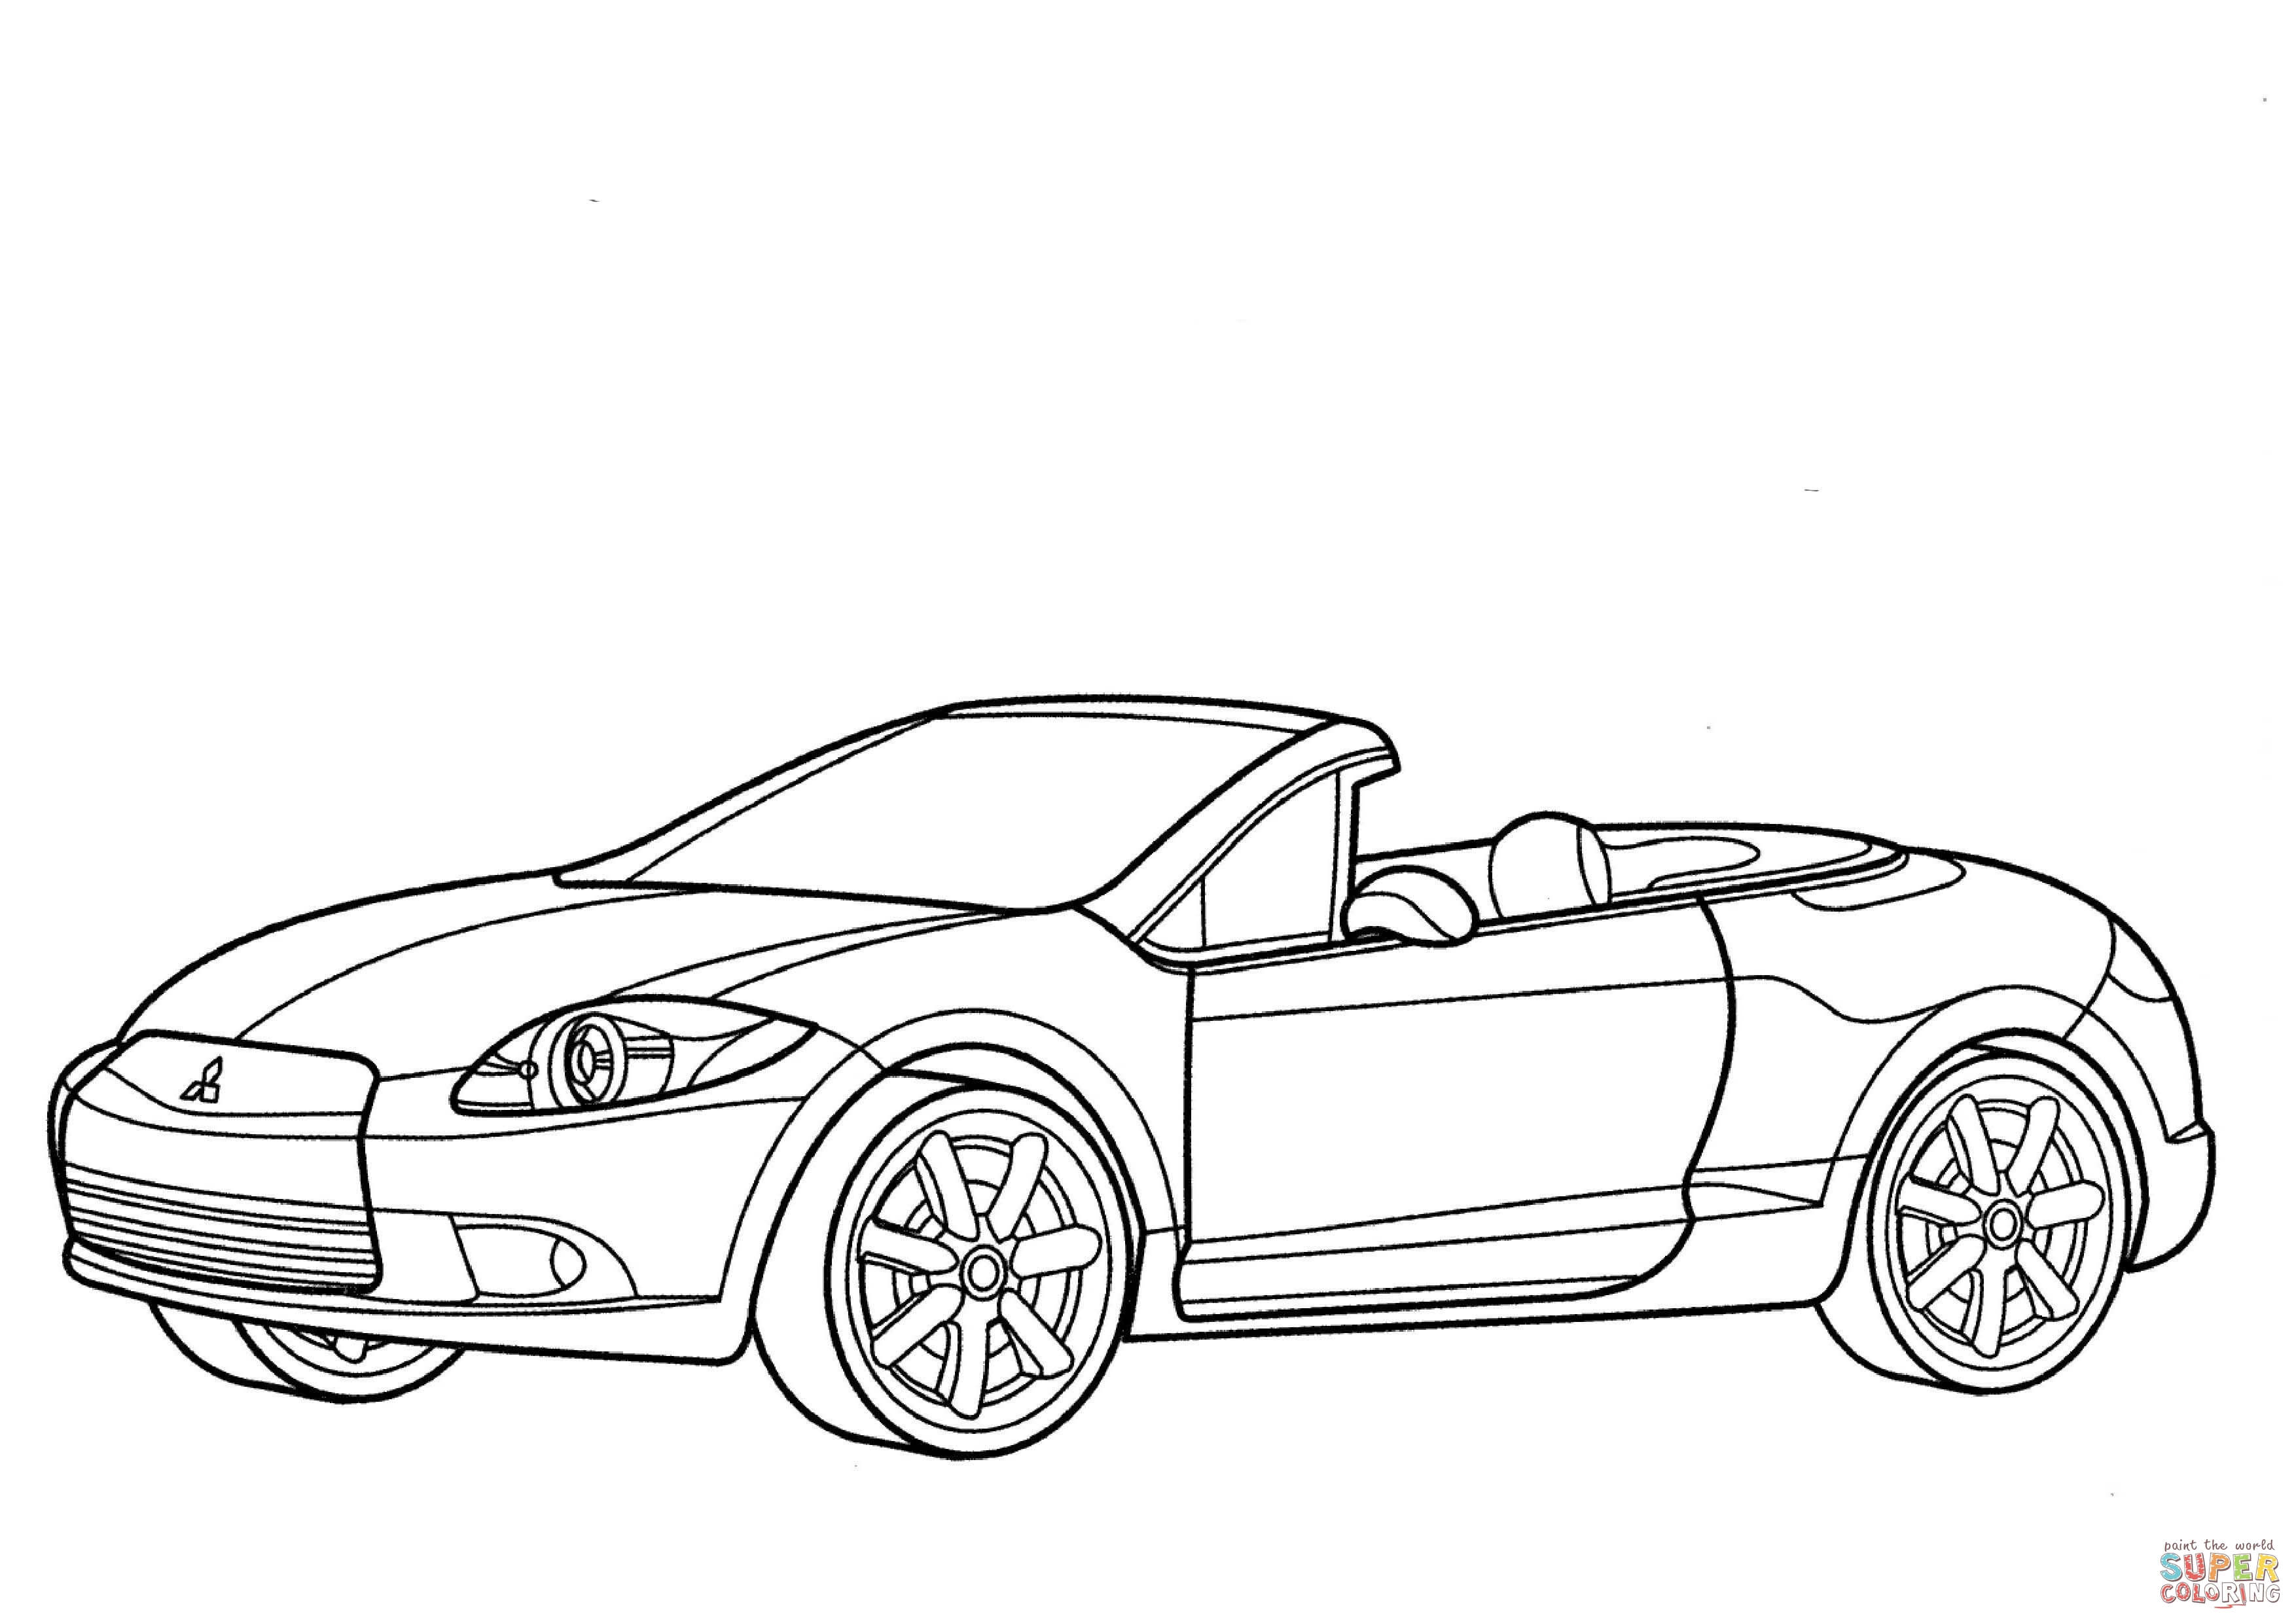 Mitsubishi Eclipse Spyder Gt Coloring Page